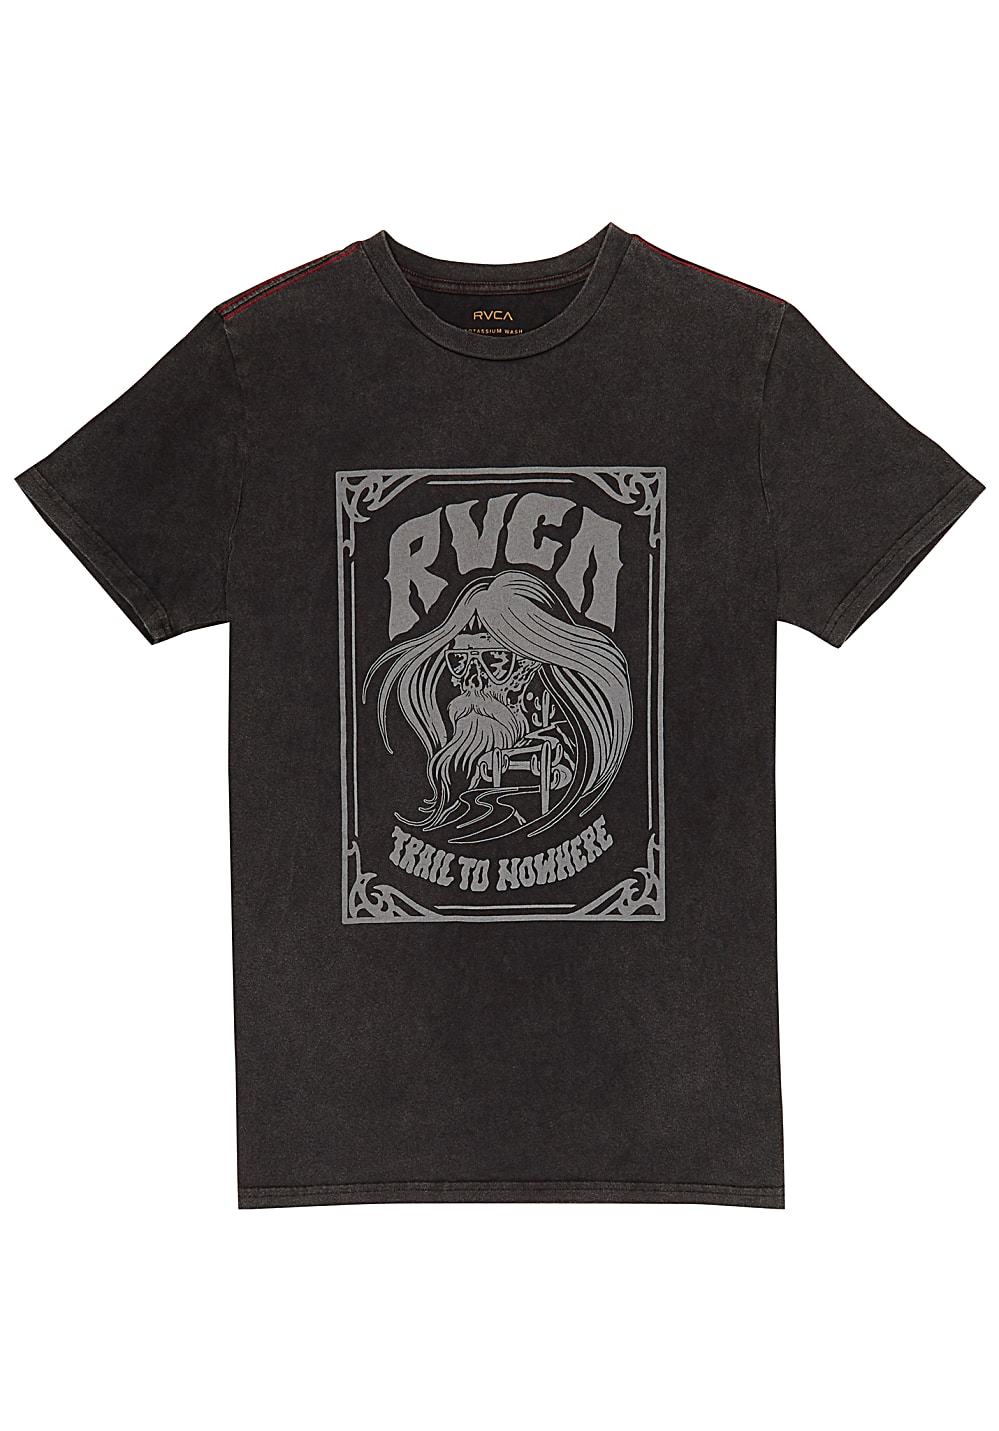 rvca trail to nowhere t shirt f r herren schwarz. Black Bedroom Furniture Sets. Home Design Ideas